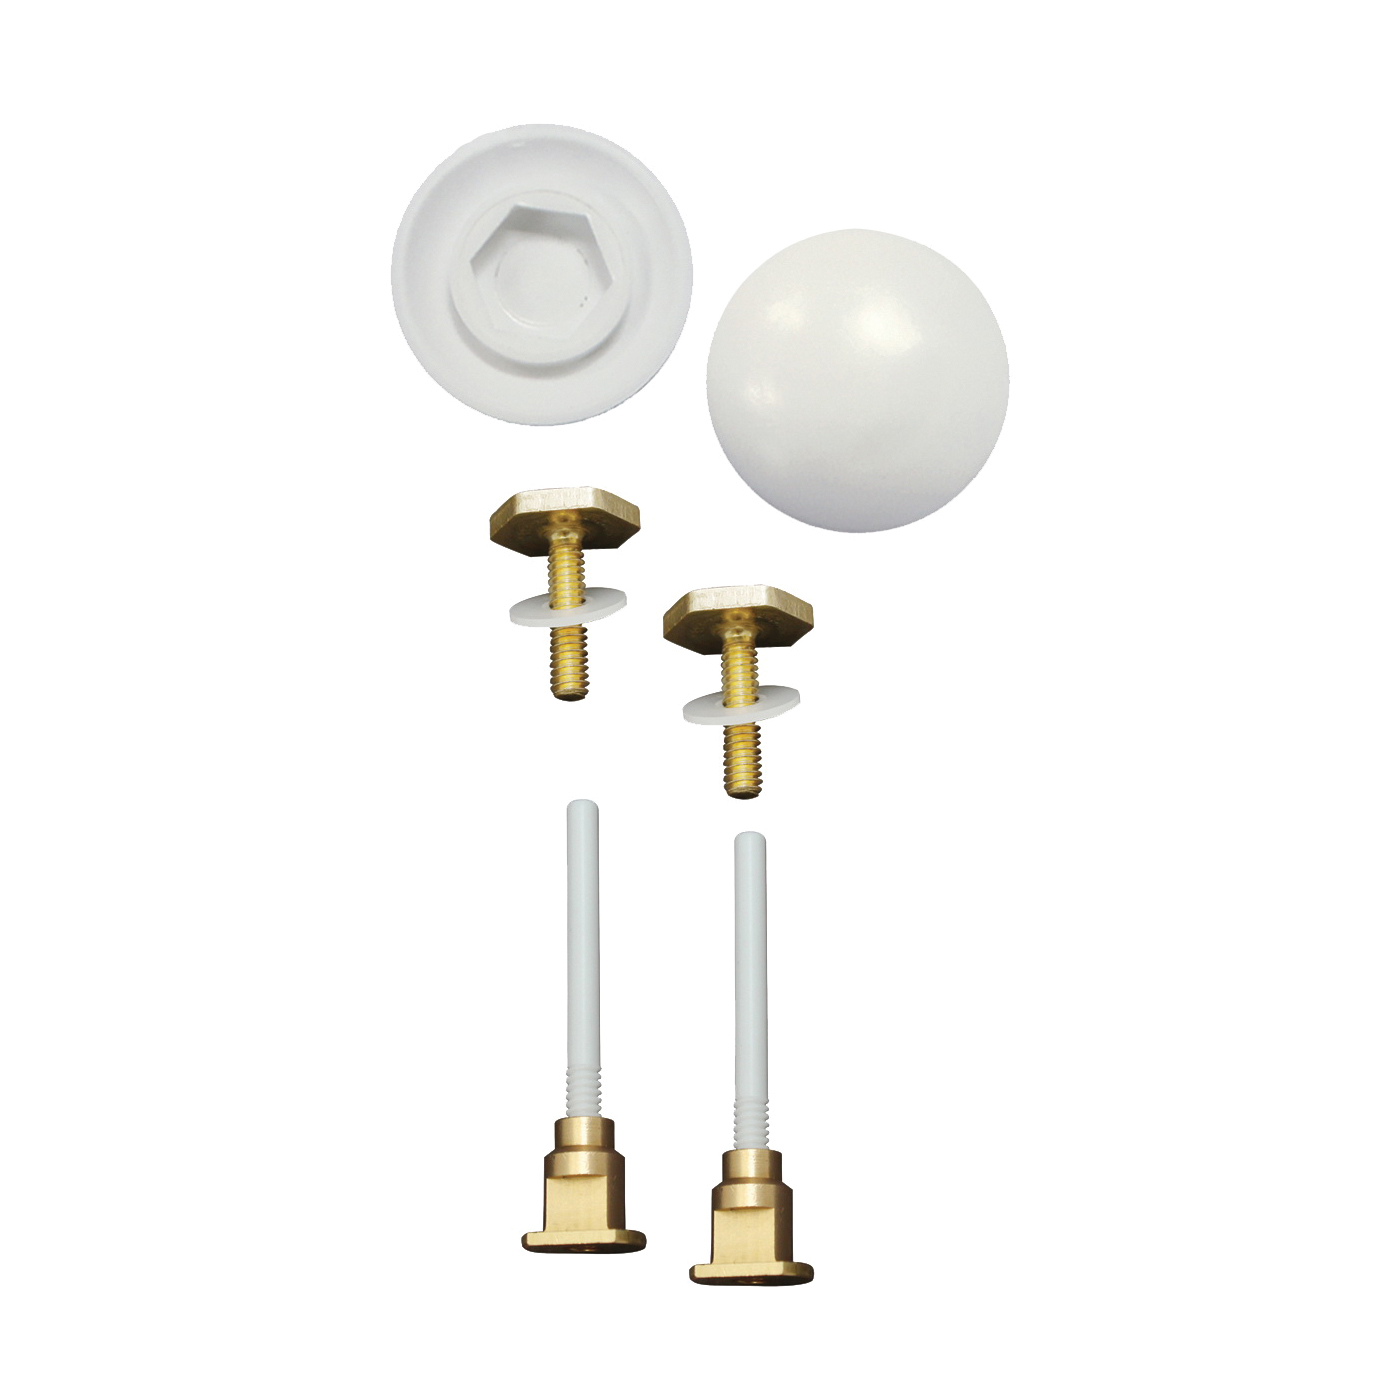 Picture of Keeney K835-171 EZ Install Cap and Bolt Set, White, Carded